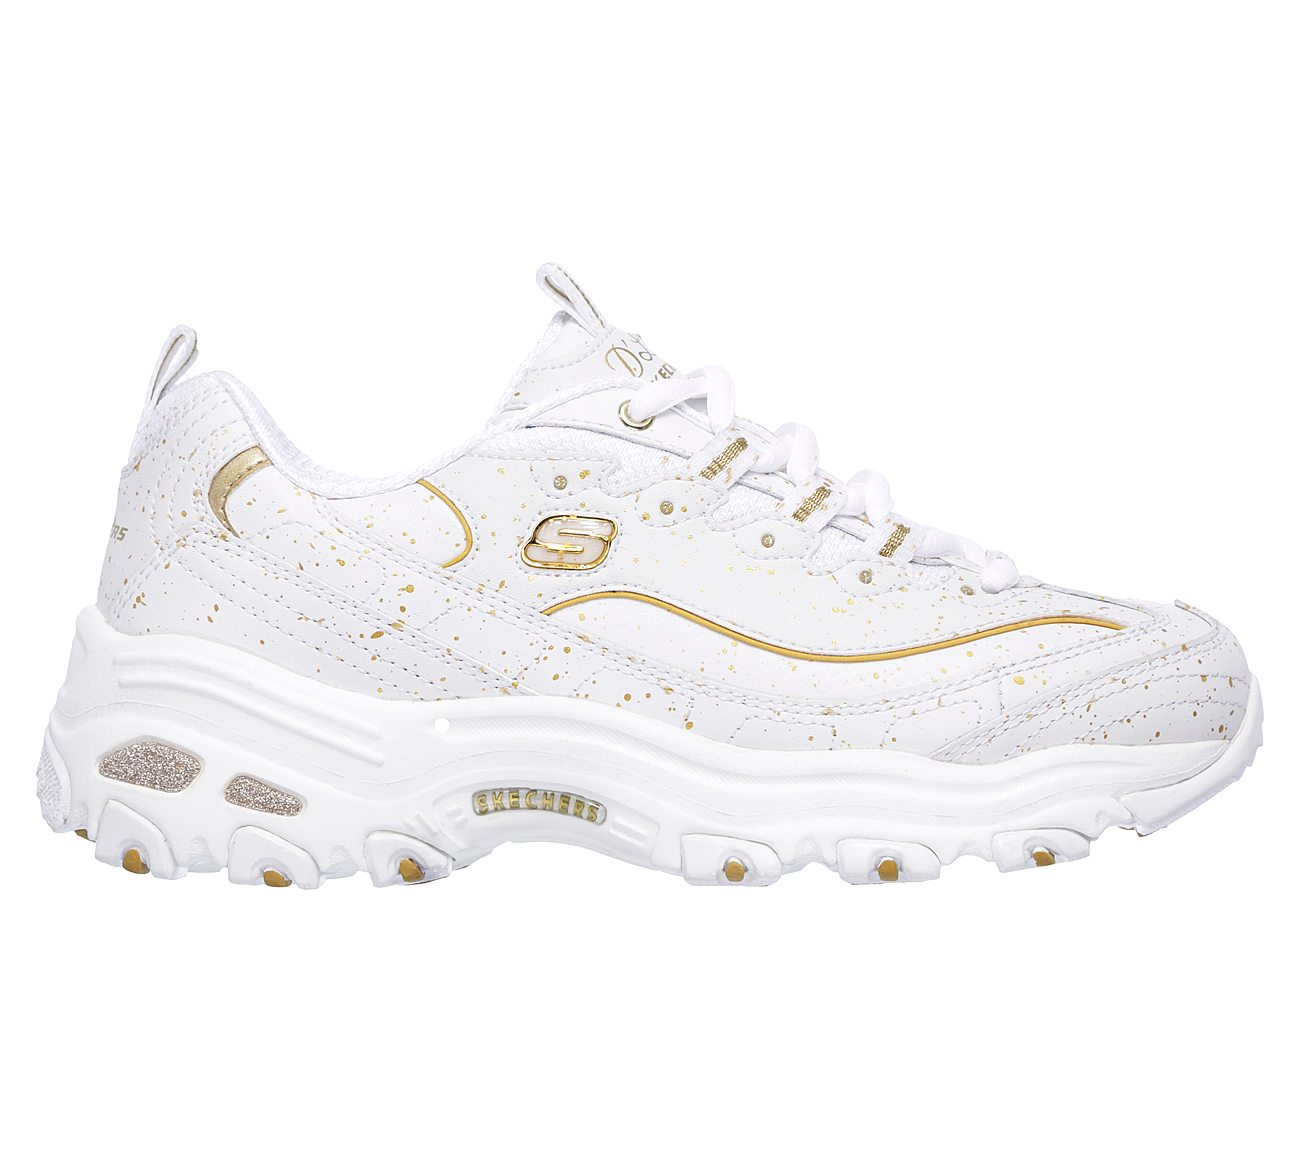 f56165dabf1 Buy SKECHERS D Lites - Strike Gold D Lites Shoes only  70.00